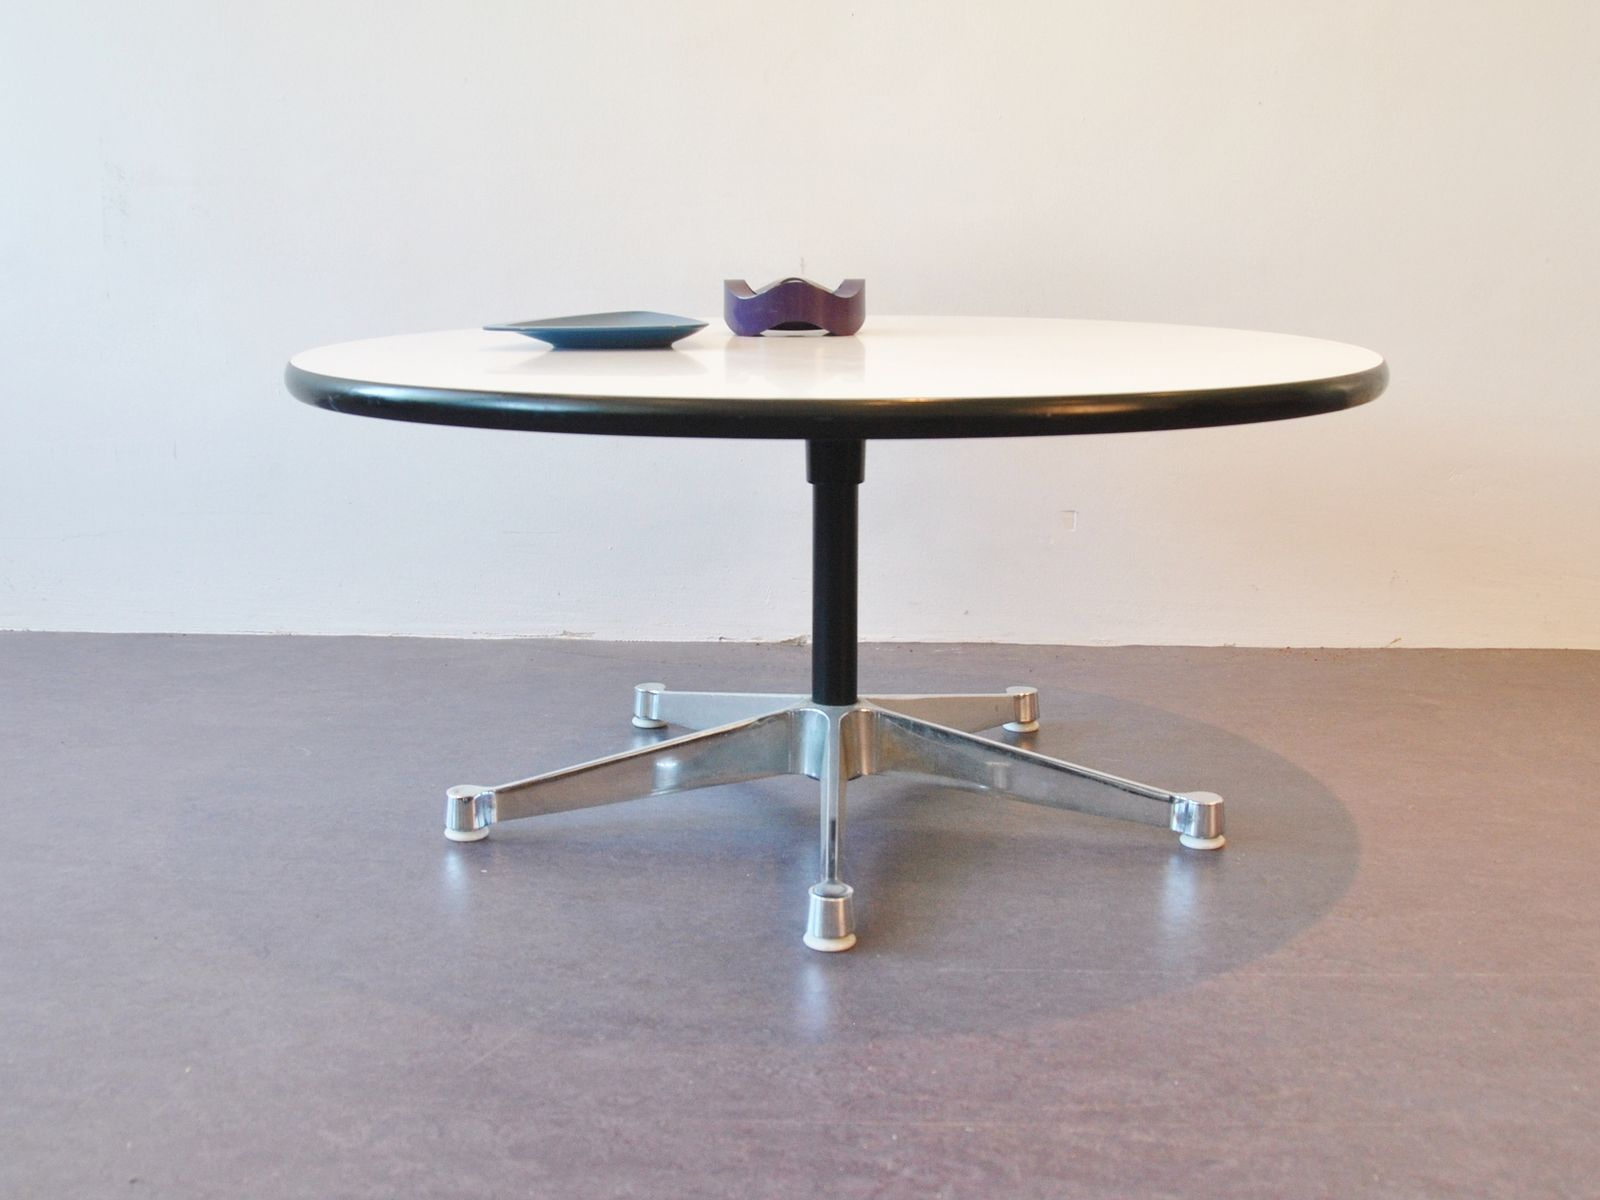 5 Star Contract Base Aluminum Group Coffee Table By George Nelson For Herman Miller For Sale At